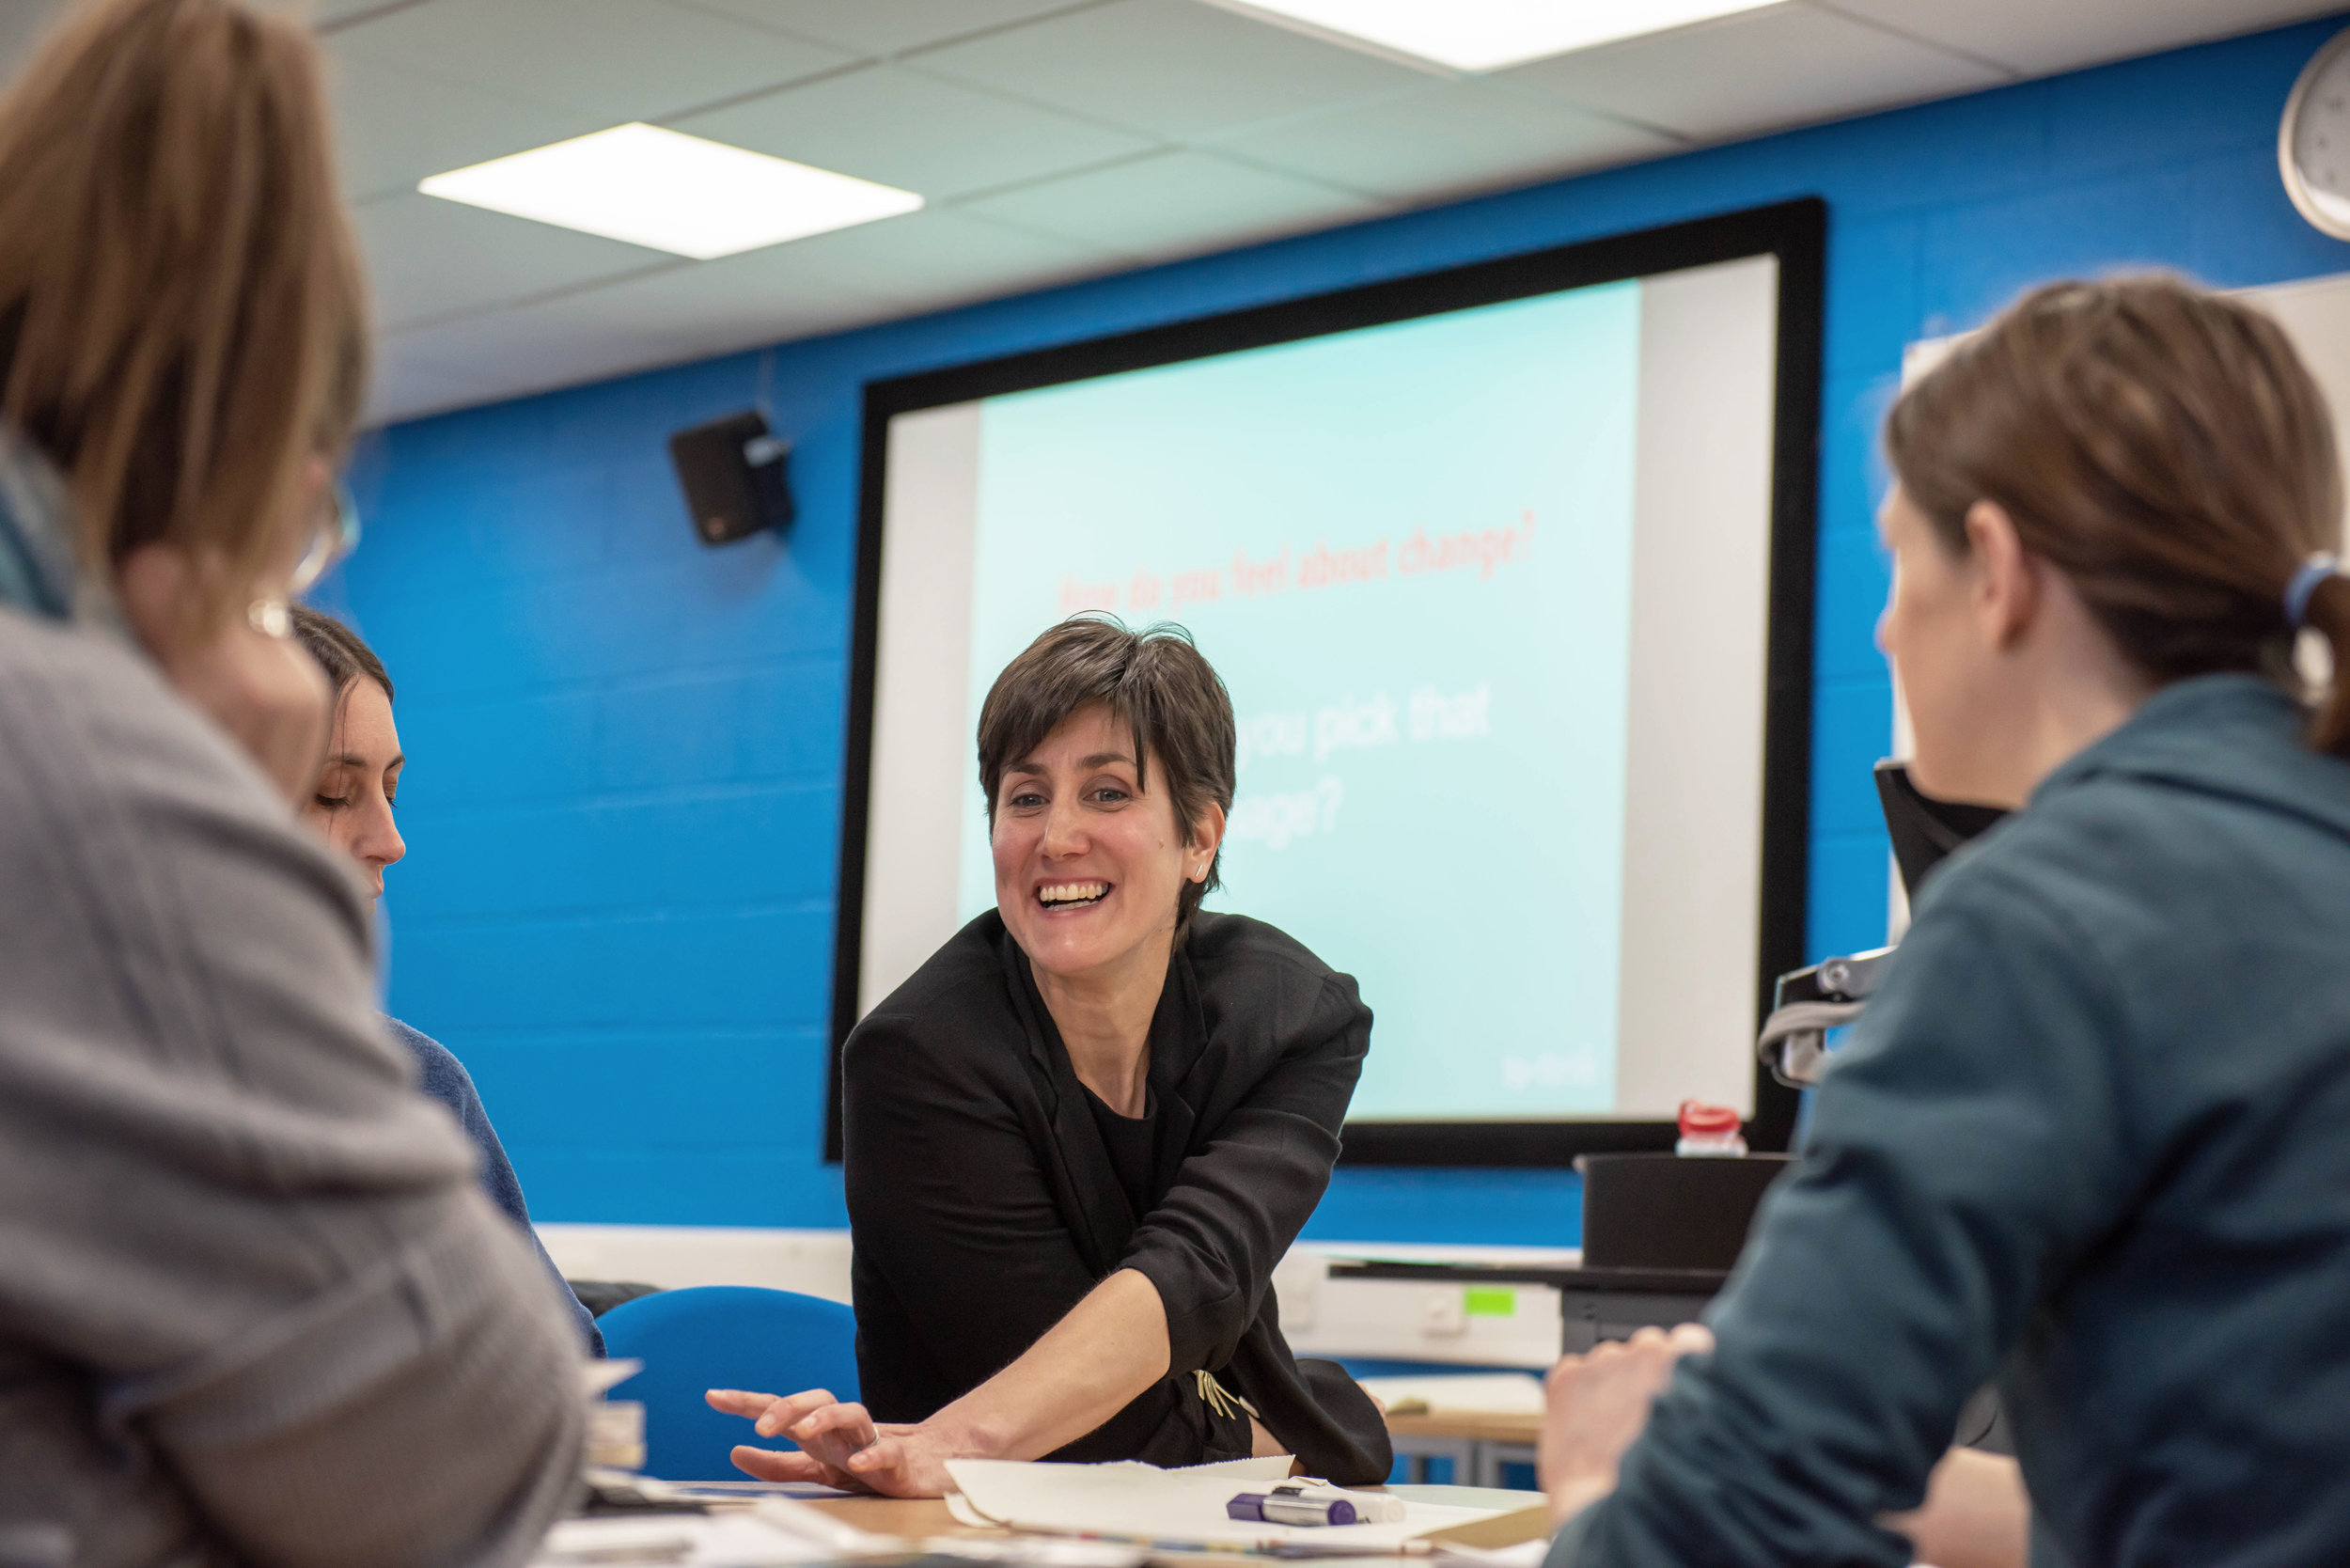 Creating a Coaching Culture:Ambassadors Programme - Working with you to develop your own in-house talent. Creating and working with a team of Ambassadors to establish a company culture that helps nurture your female leaders and supports them and you to grow.I will:Help you to identify and bring on board staff across the organisation through the establishment of 'change circles'Deliver 'Coaching of Coaches' training to include sessions on: understanding your own frame of reference, active listening skills, group dynamics, powerful questions, motivation and signs of recognitionDesign a set of bespoke training materials and an accompanying facilitators guide, if requiredProvide on-going support through Action Learning sets and 1-to-1 or group coaching sessions for staff involvedCreate opportunities for celebration